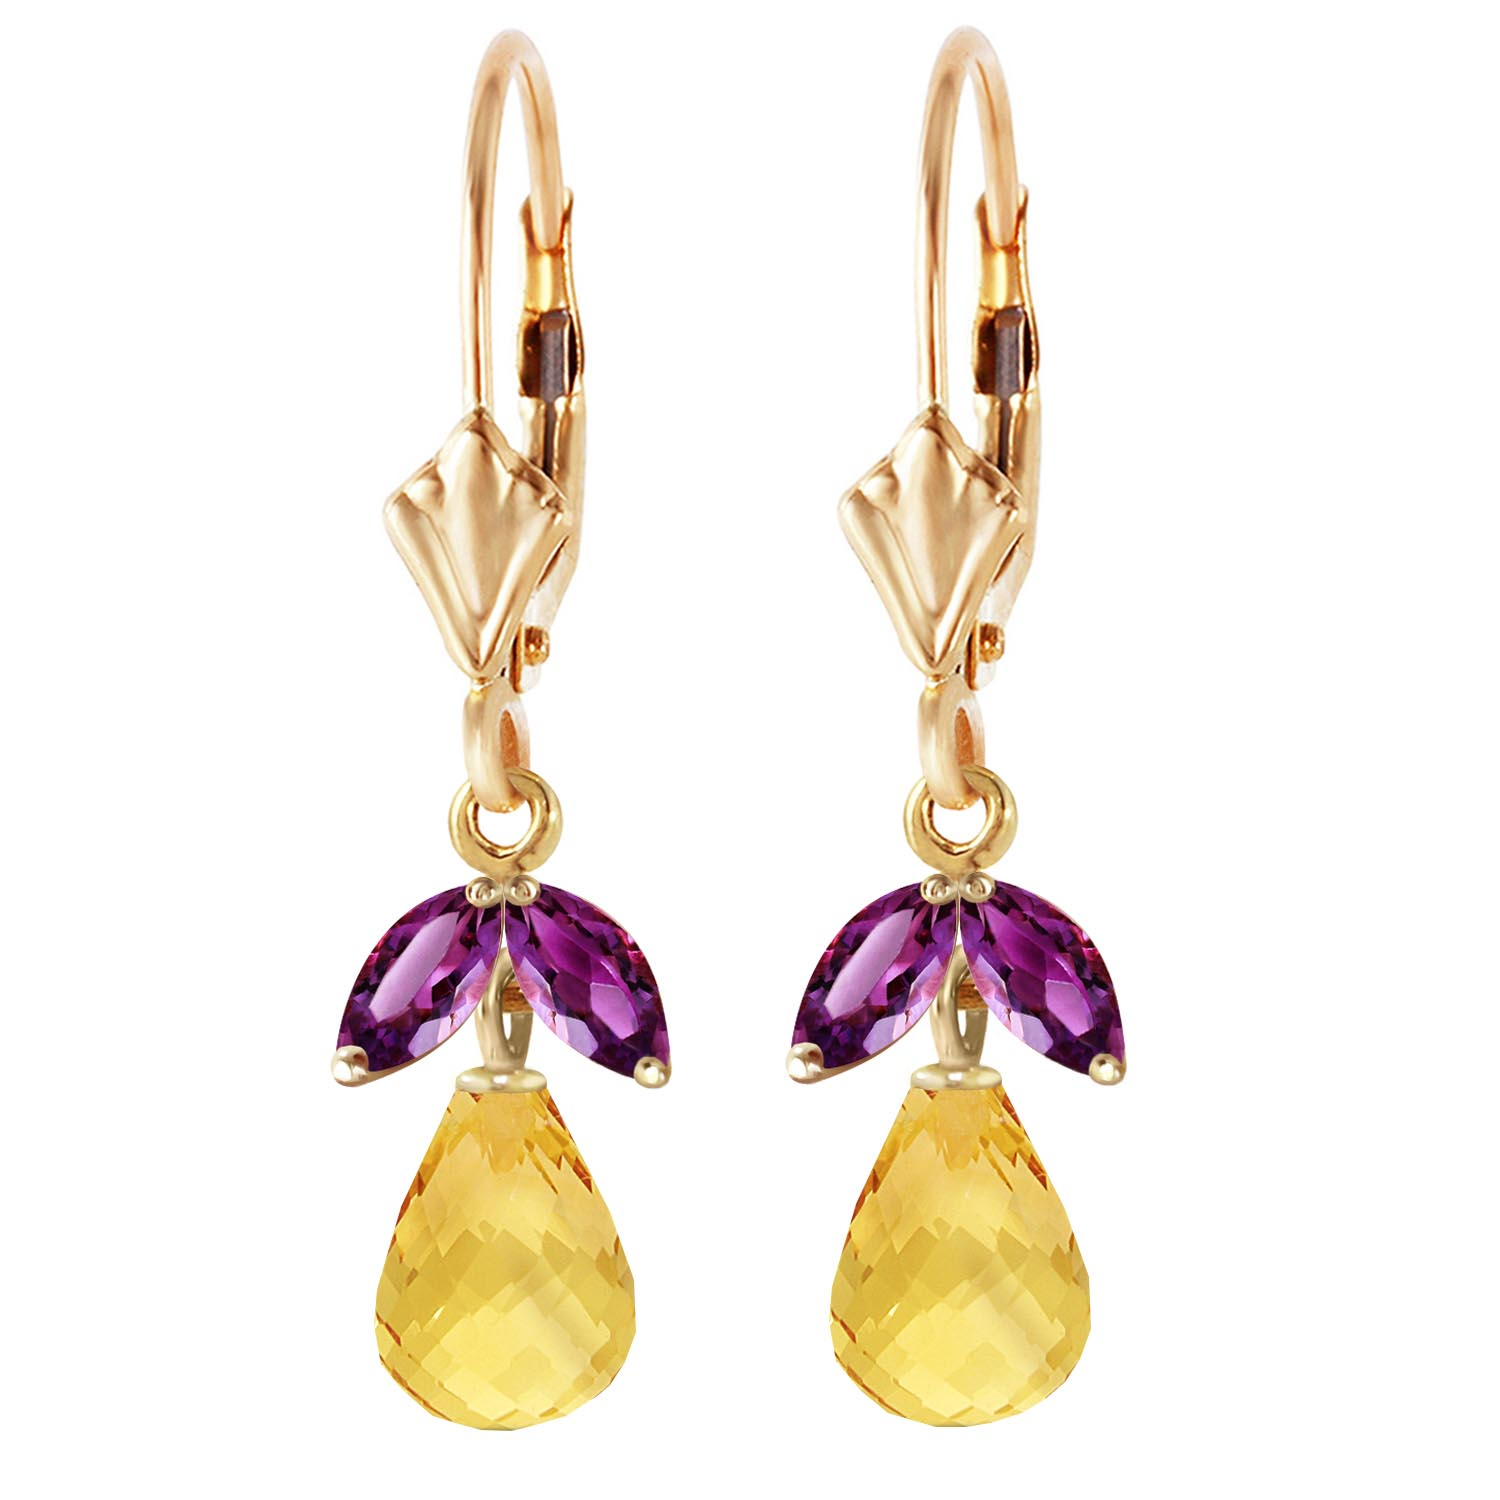 Citrine and Amethyst Snowdrop Earrings 3.4ctw in 14K Gold